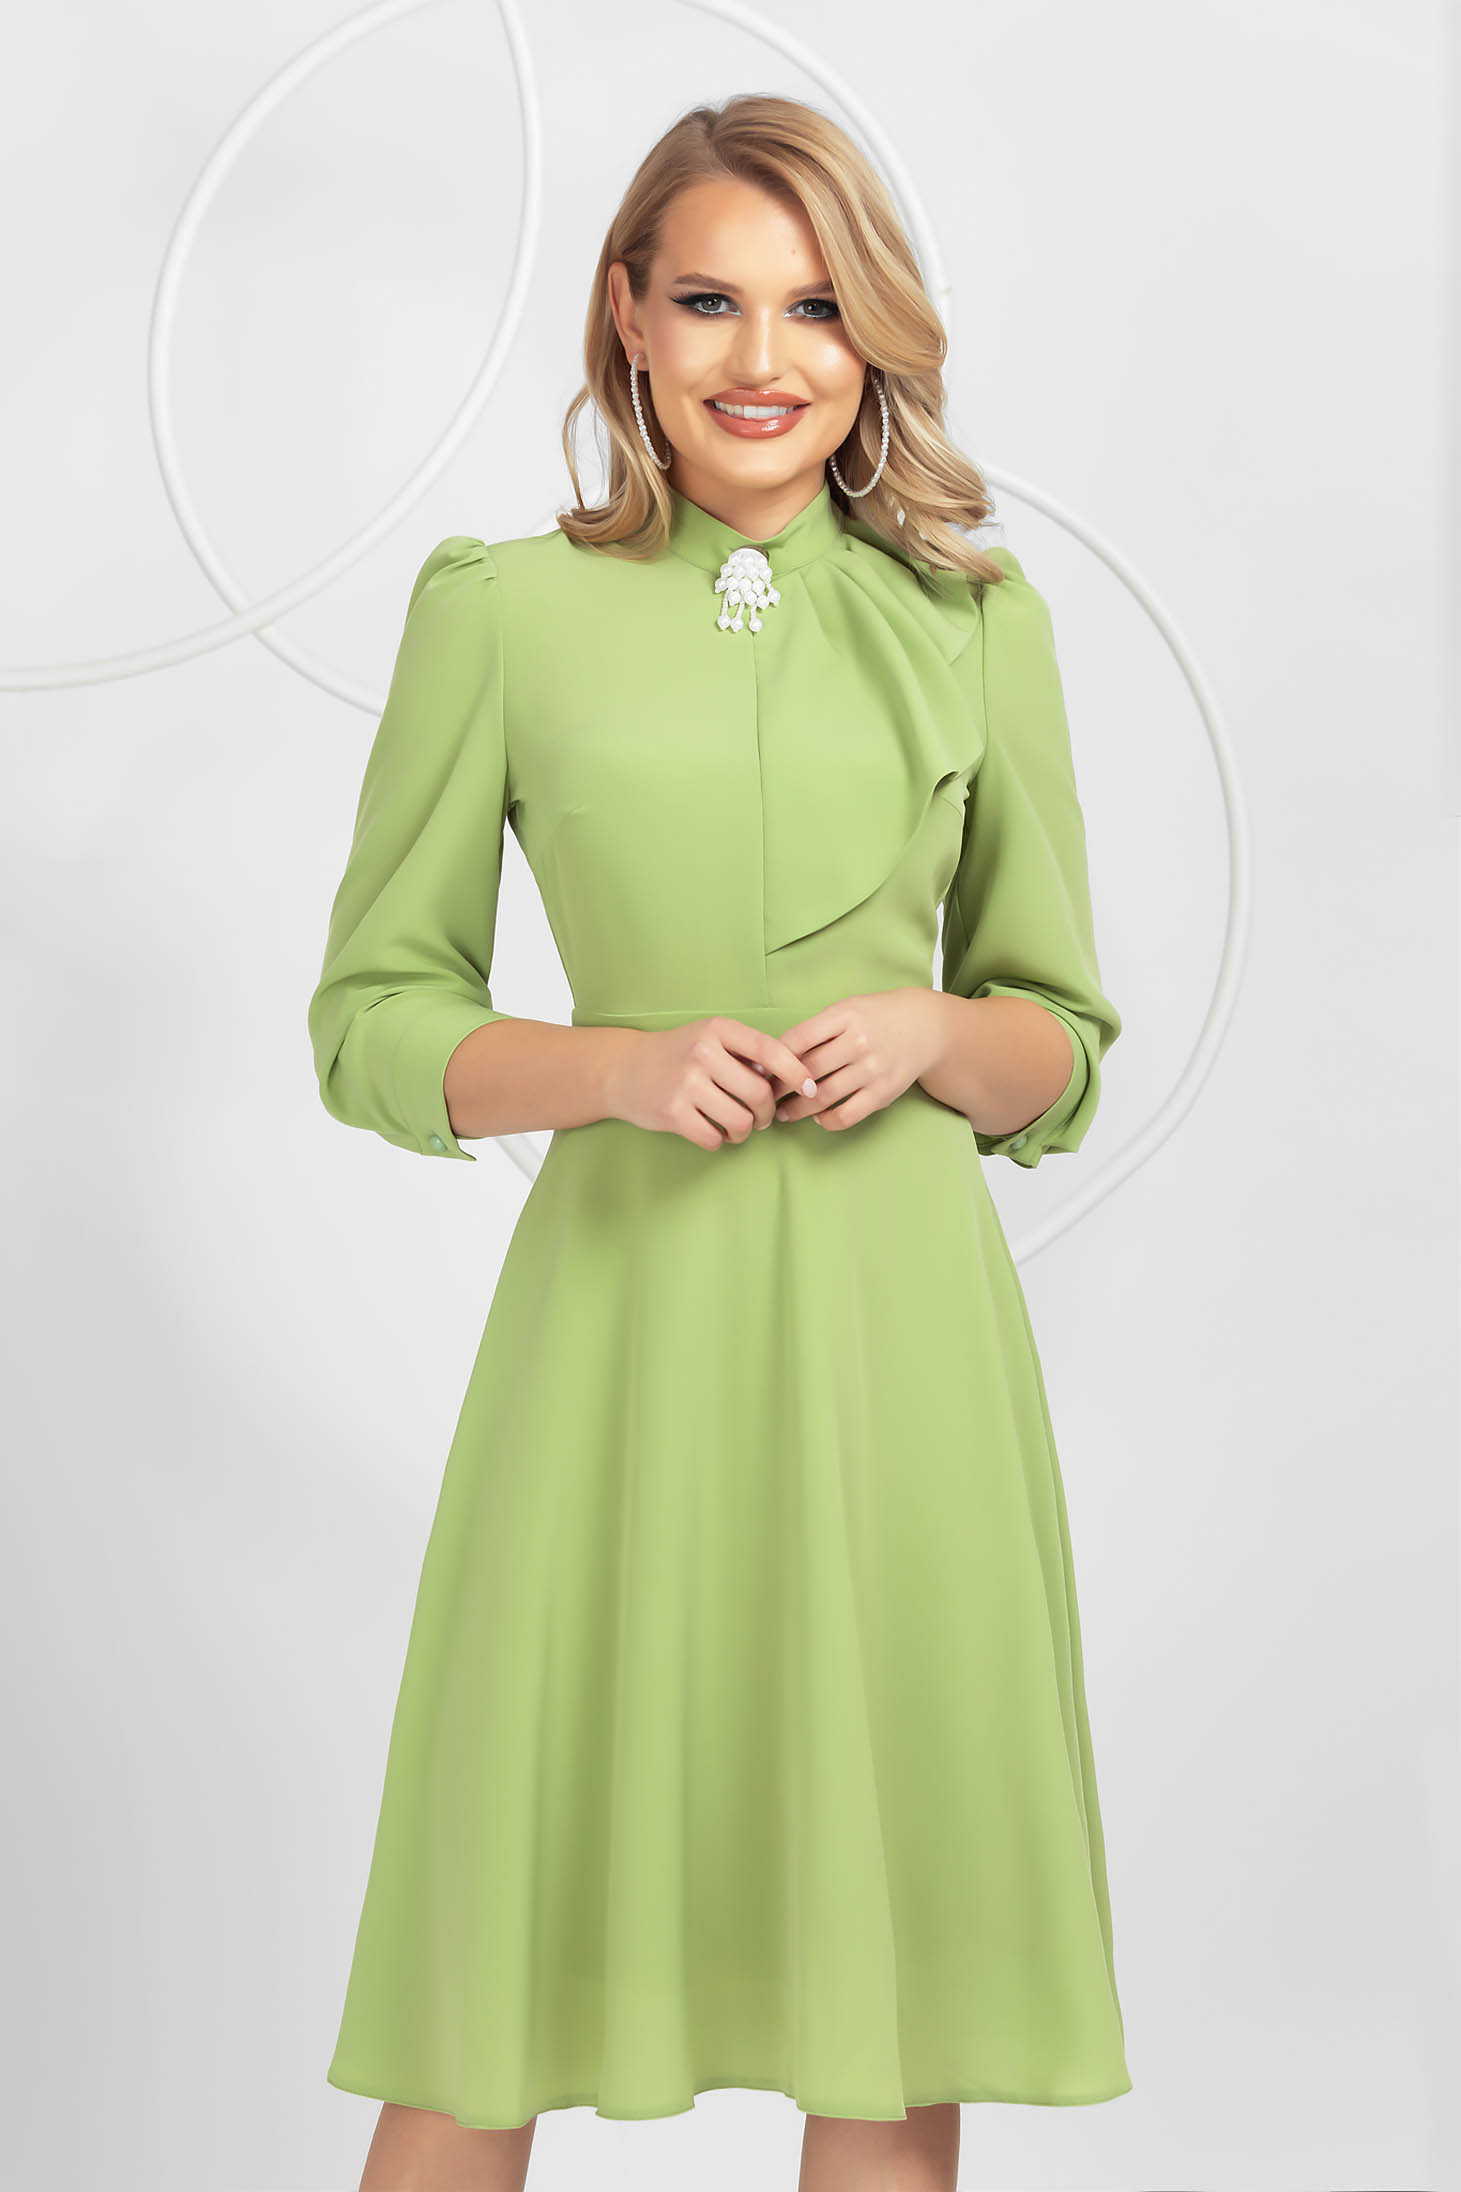 Lightgreen dress from veil fabric cloche accessorized with breastpin